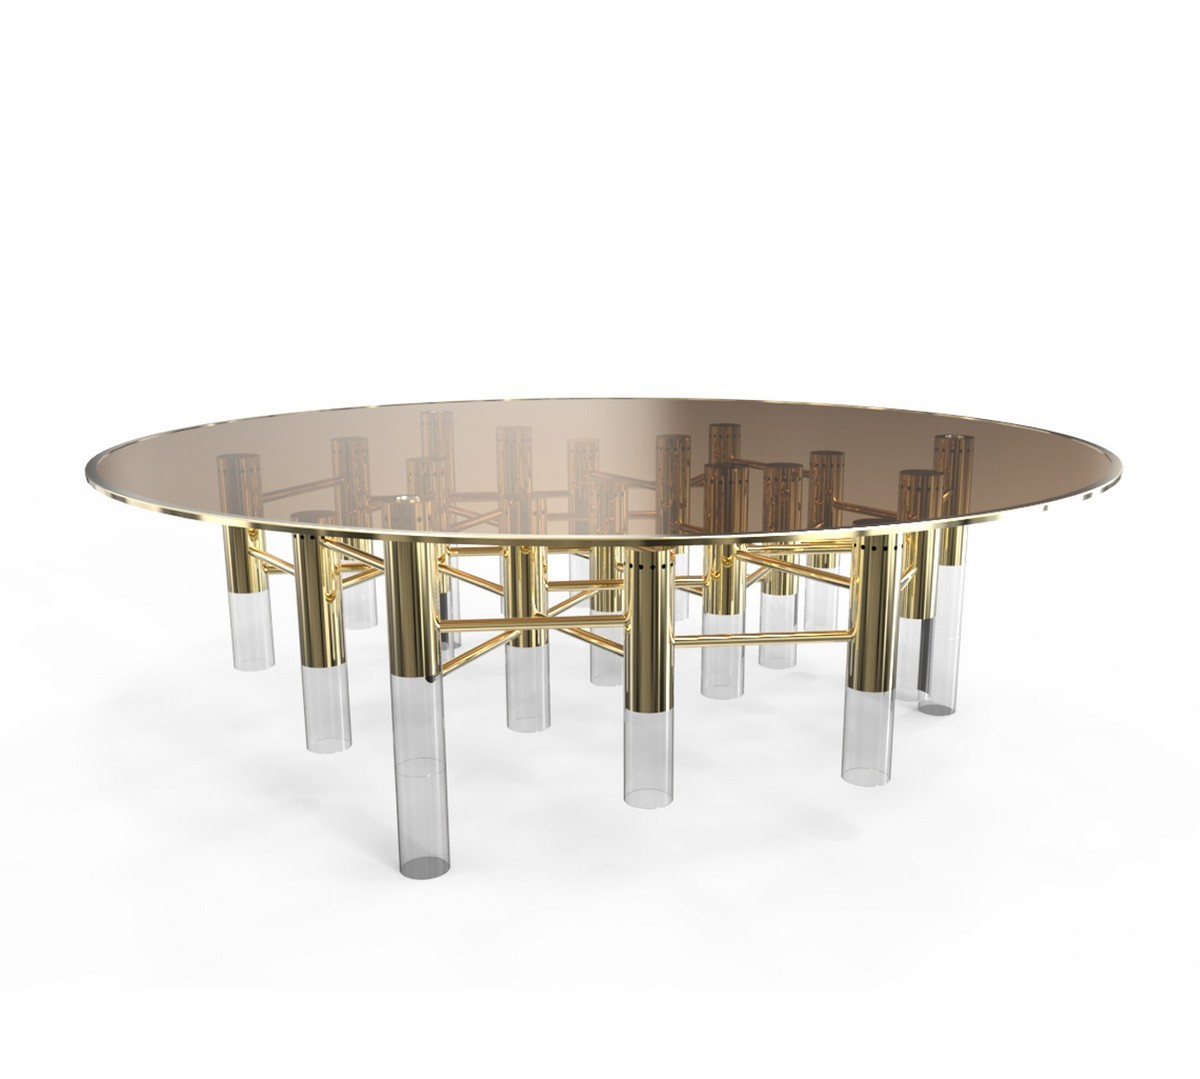 Top Neutral Color Coffee Tables neutral color coffee tables Top Neutral Color Coffee Tables konstantin